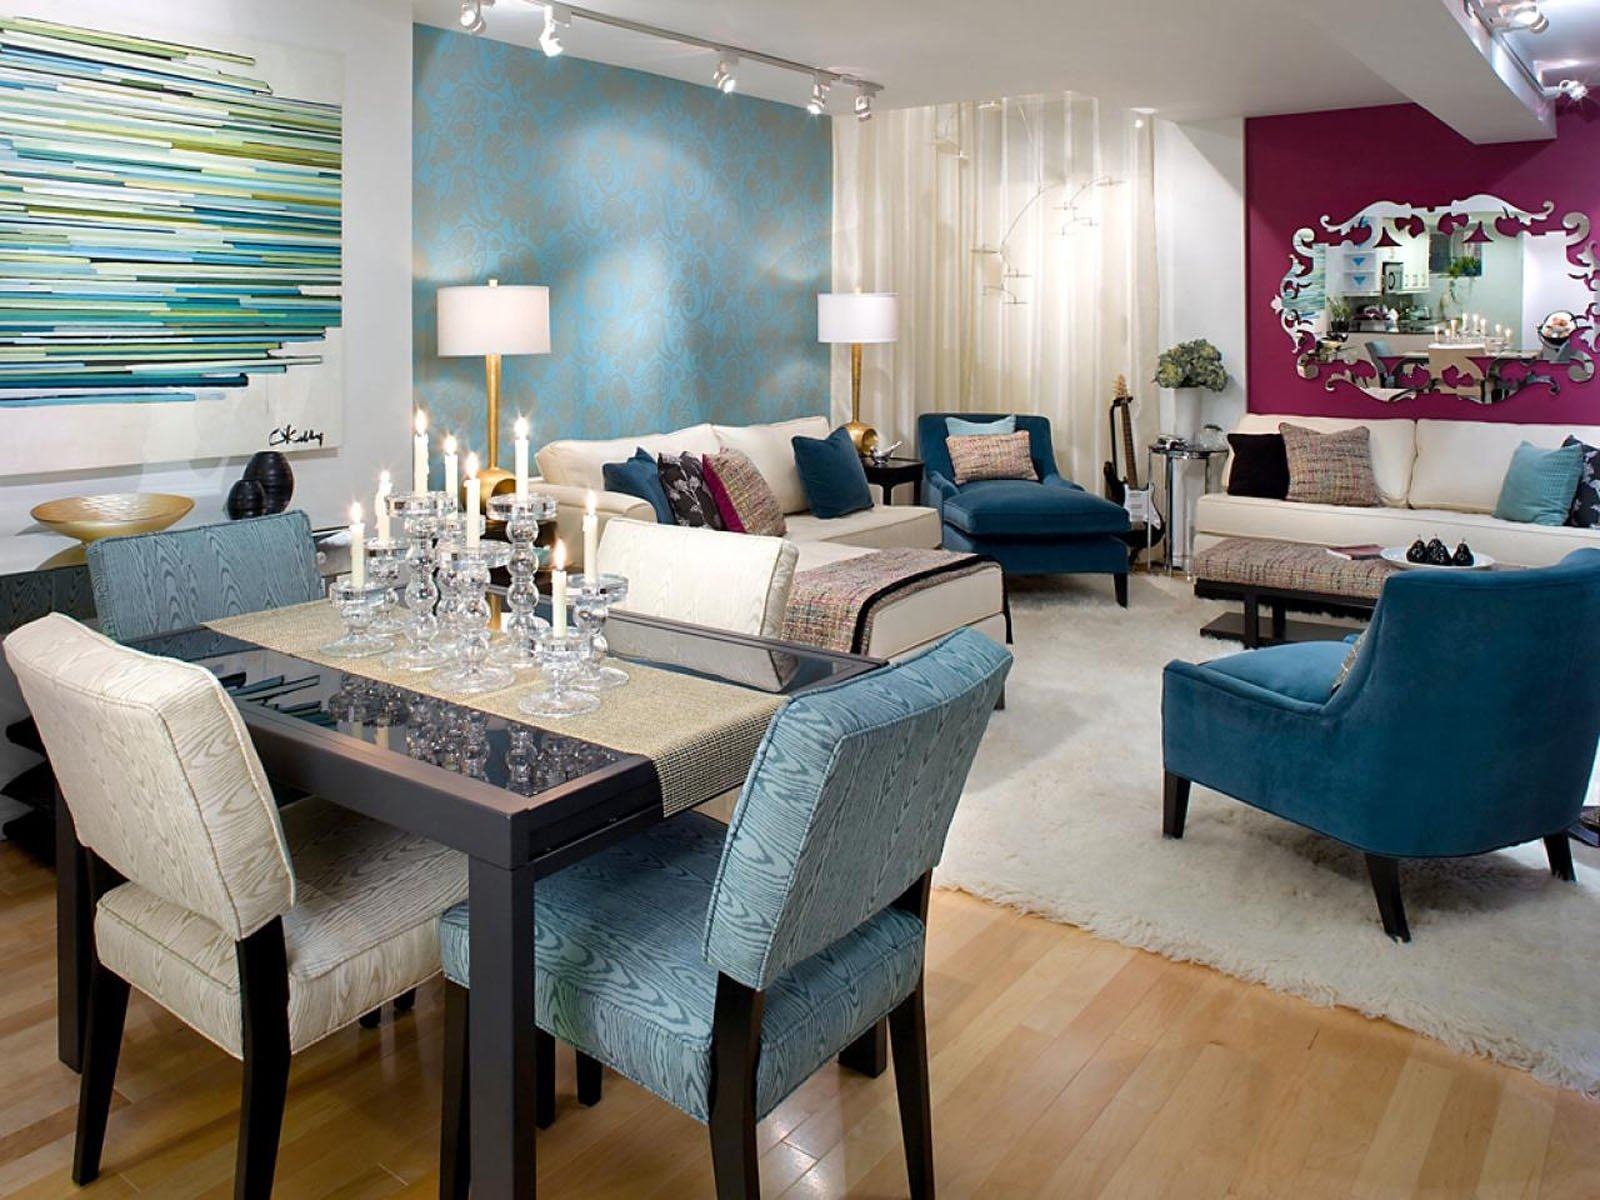 10 Ideal Small Living Room Decorating Ideas On A Budget luxury emejing small living room decorating ideas on a budget 2020